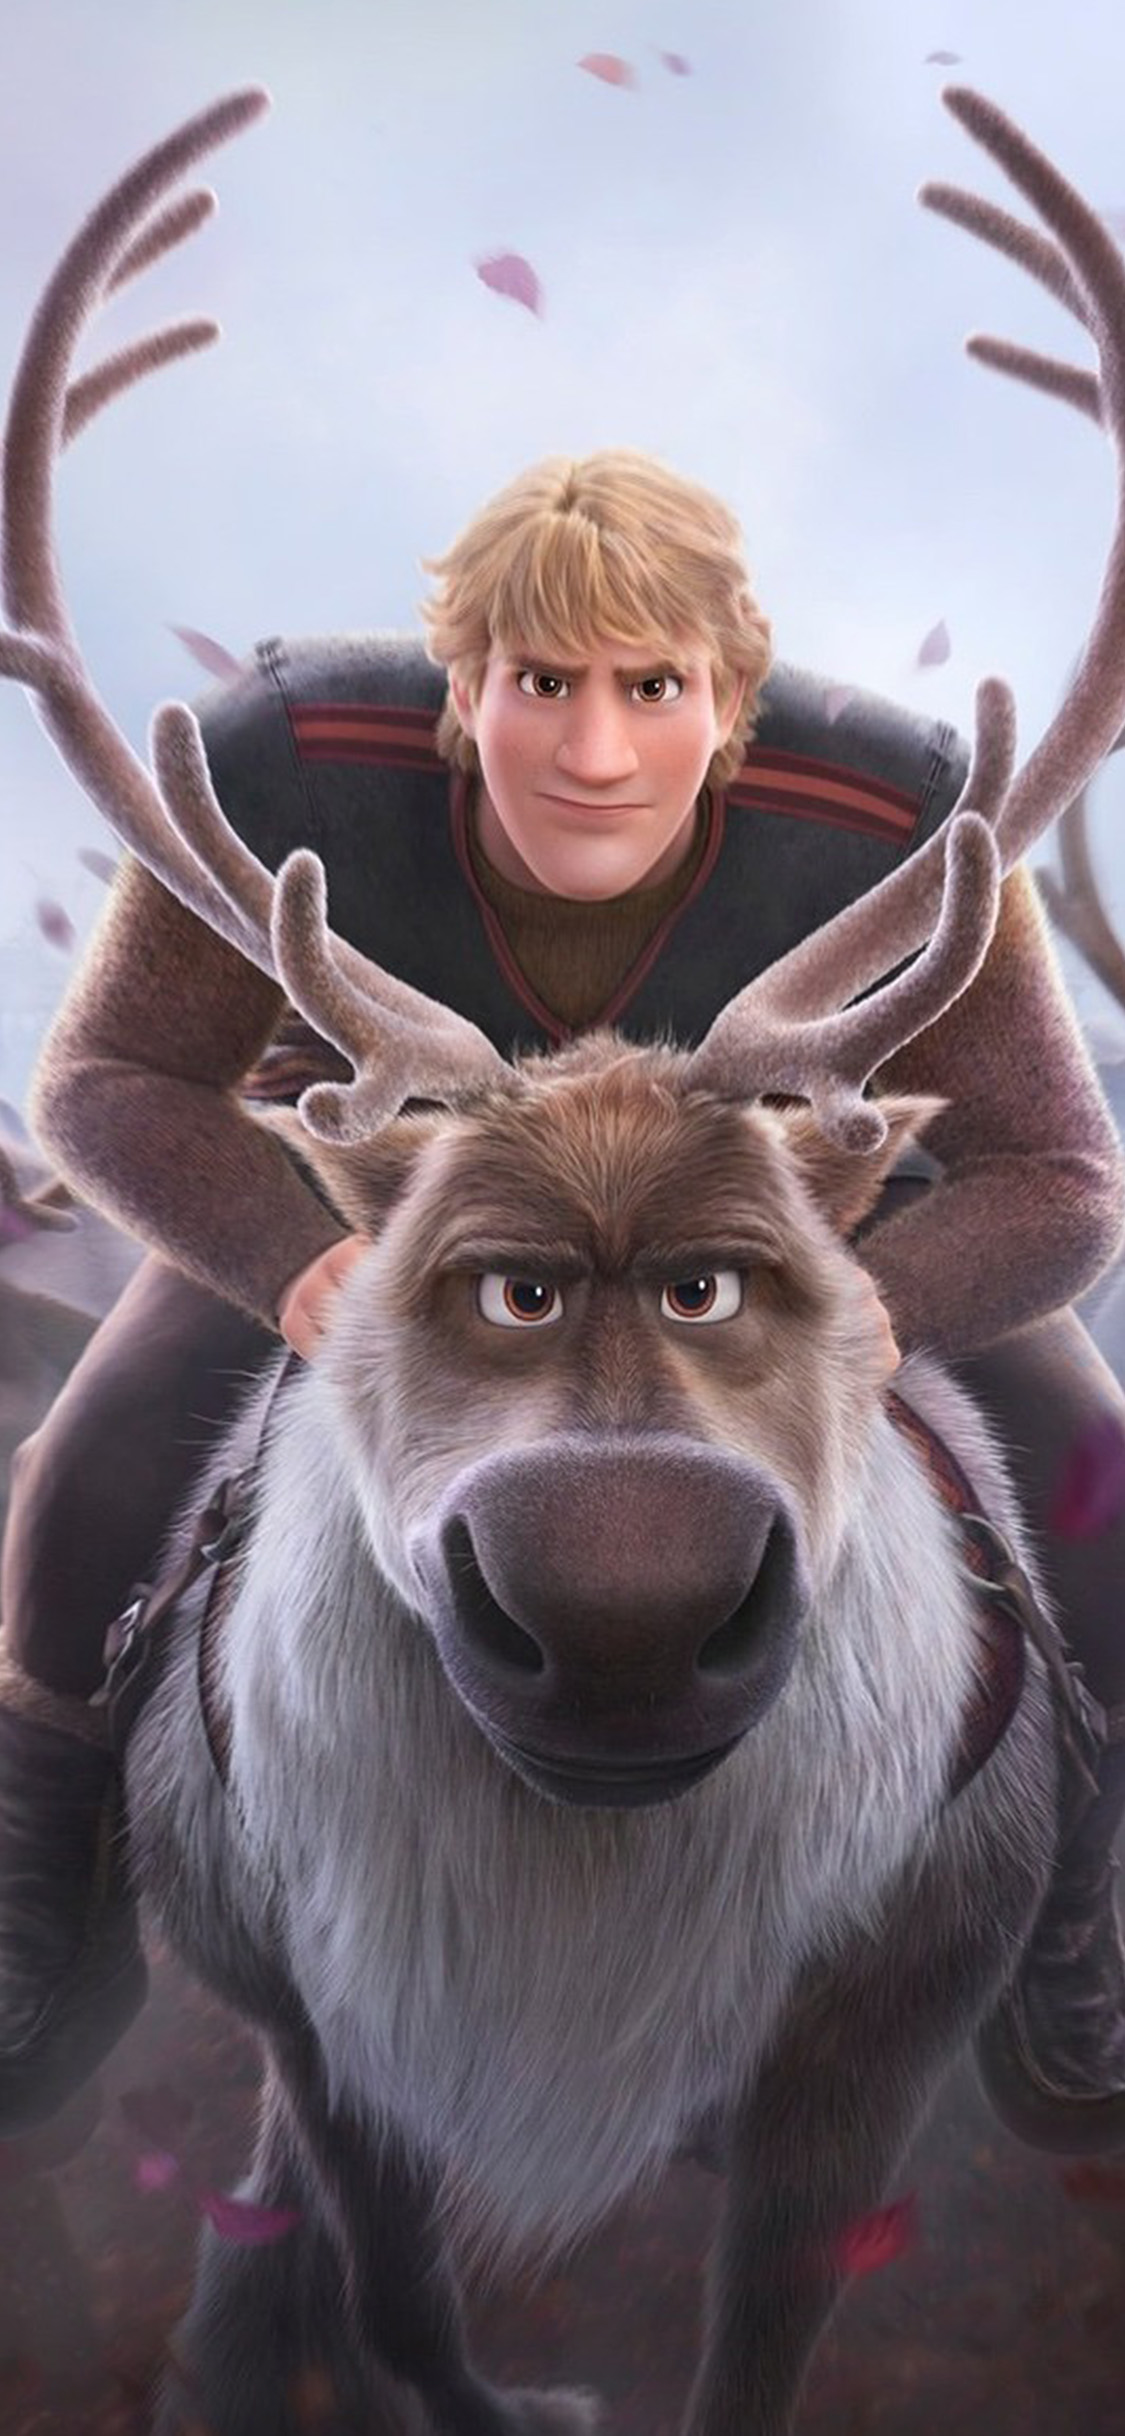 iPhonexpapers.com-Apple-iPhone-wallpaper-bj53-kristoff-frozen-disney-film-anime-art